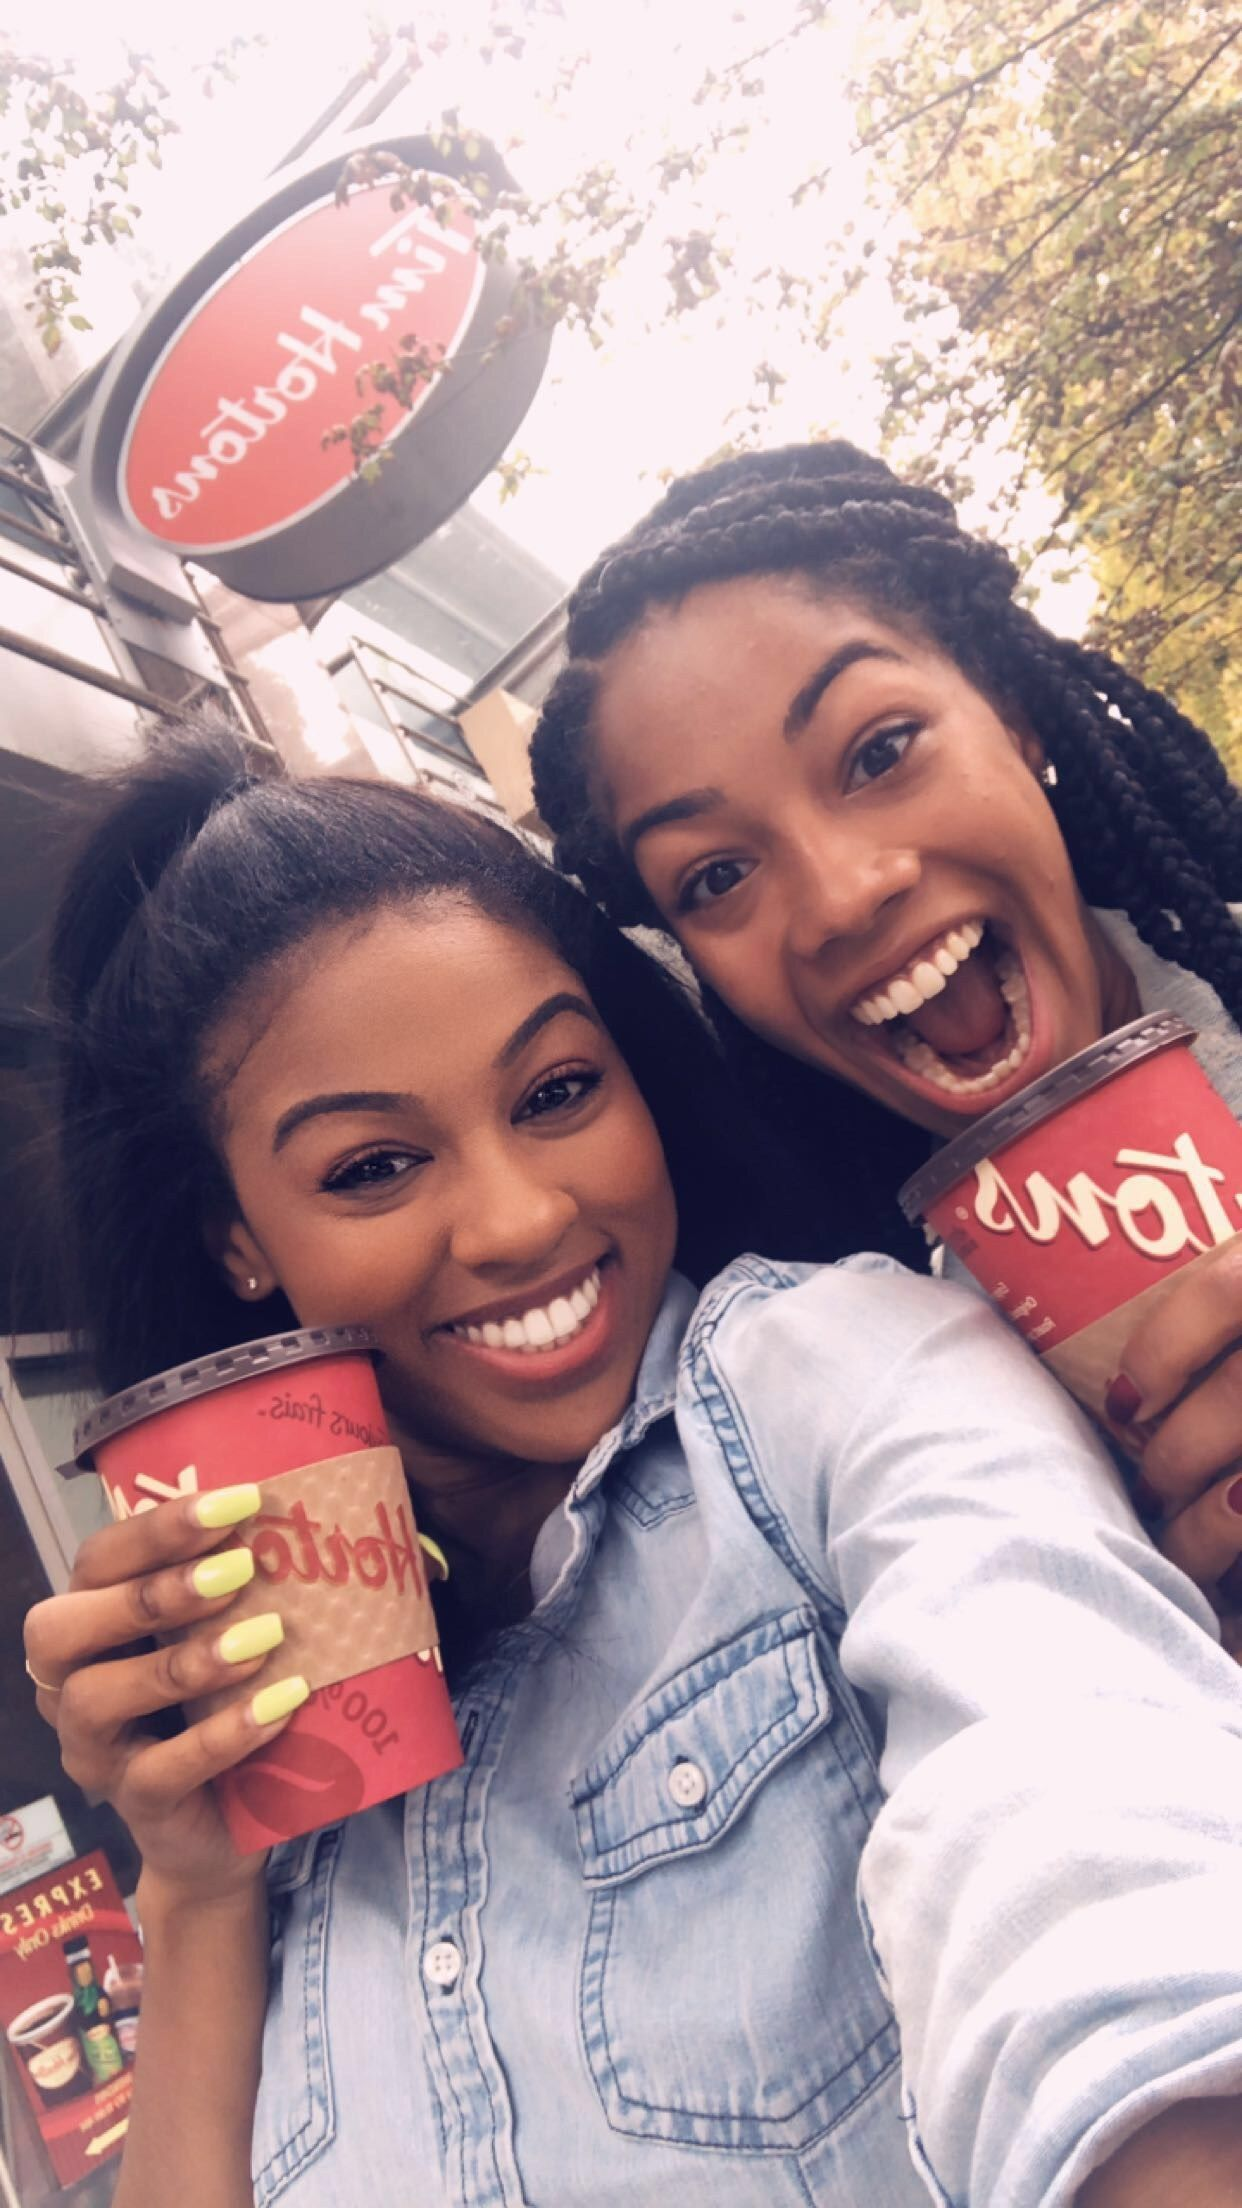 Long Distance Friendship — Round 2 Free black girls